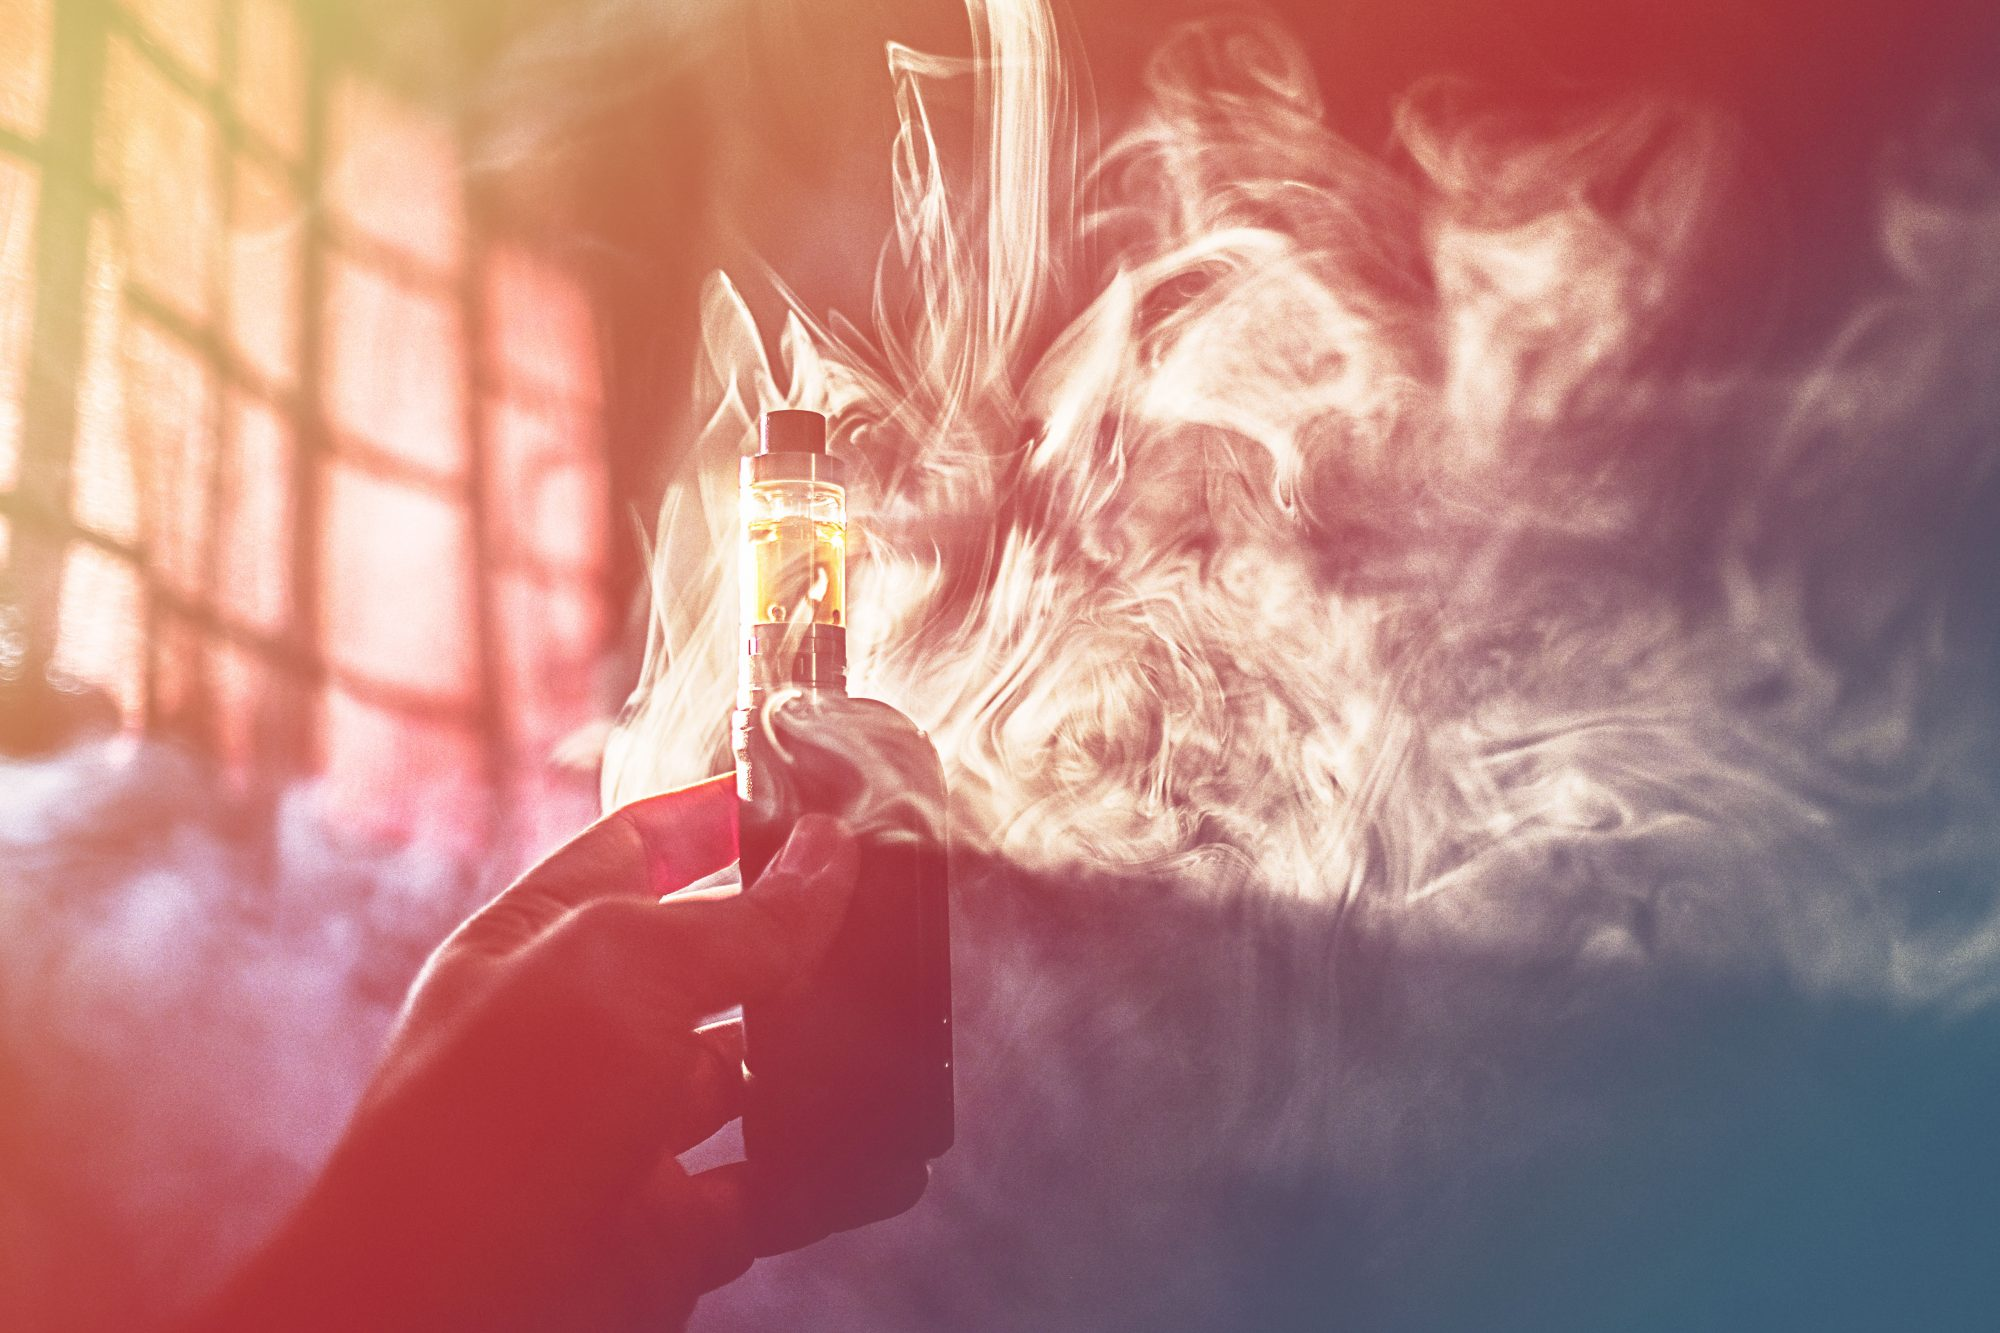 The FDA Is Investigating 127 Reports of Seizures Possibly Related to Vaping—Here's What You Need to Know